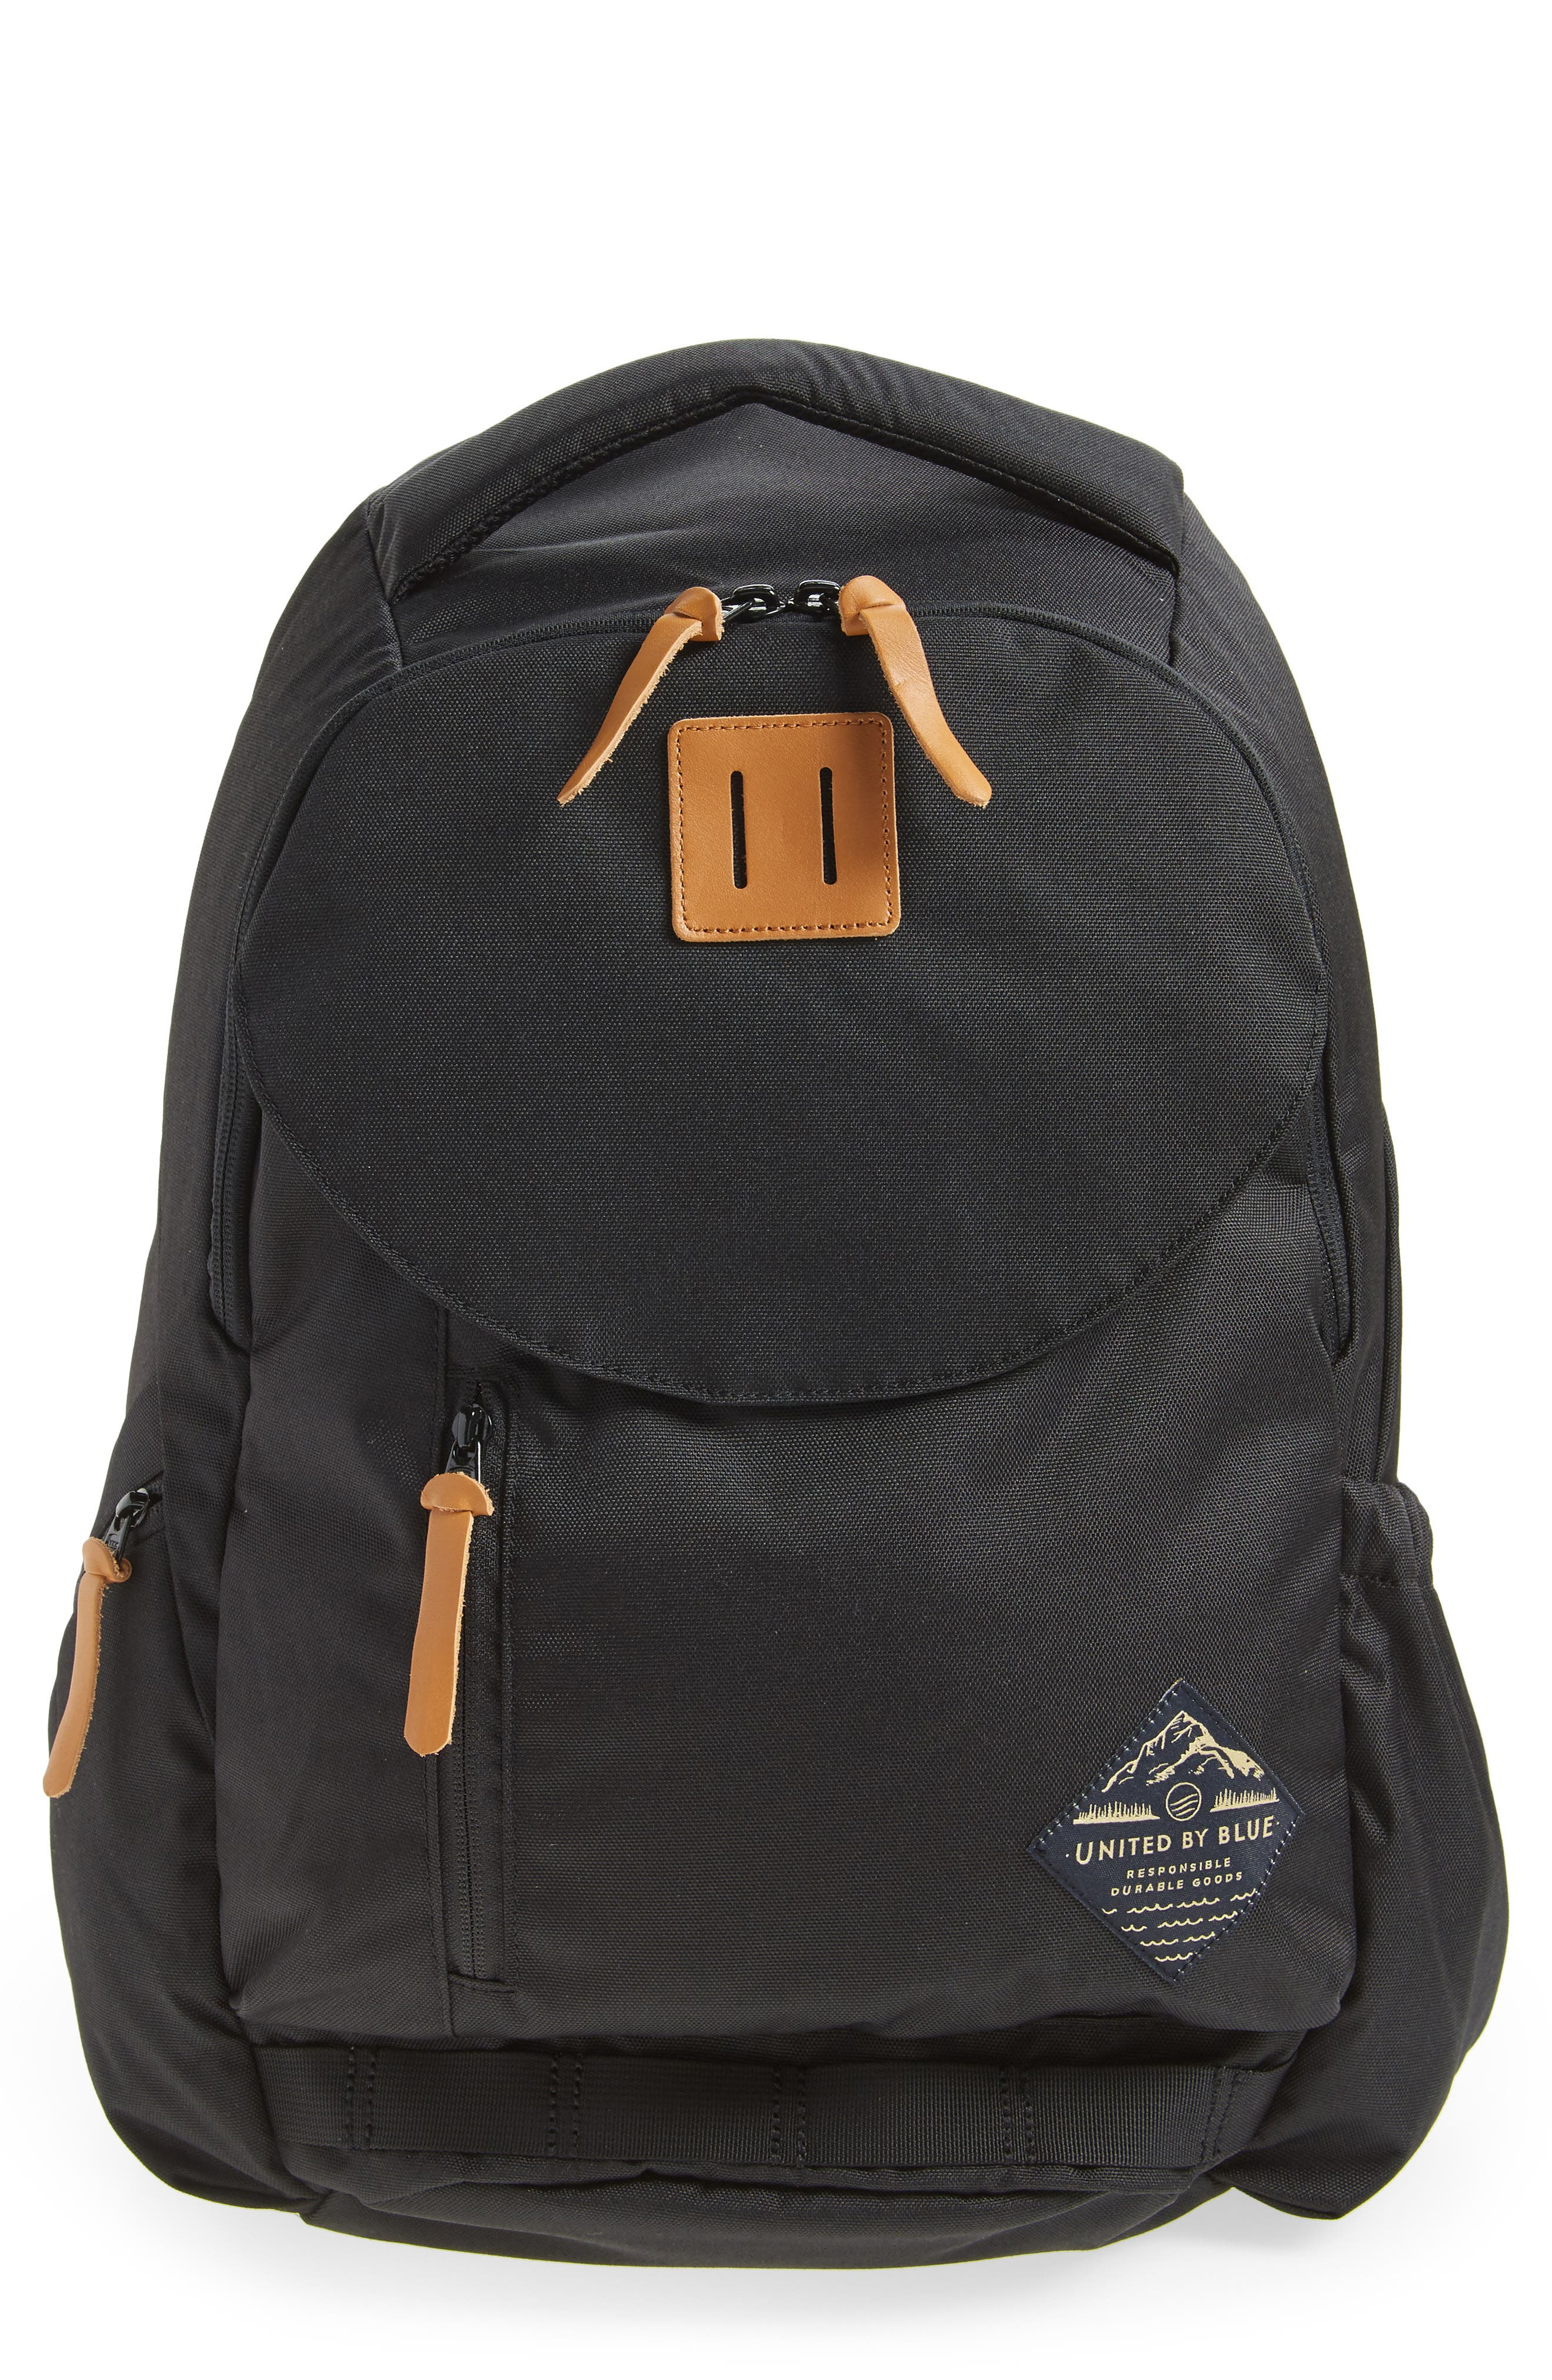 United By Blue Rift Backpack - Black